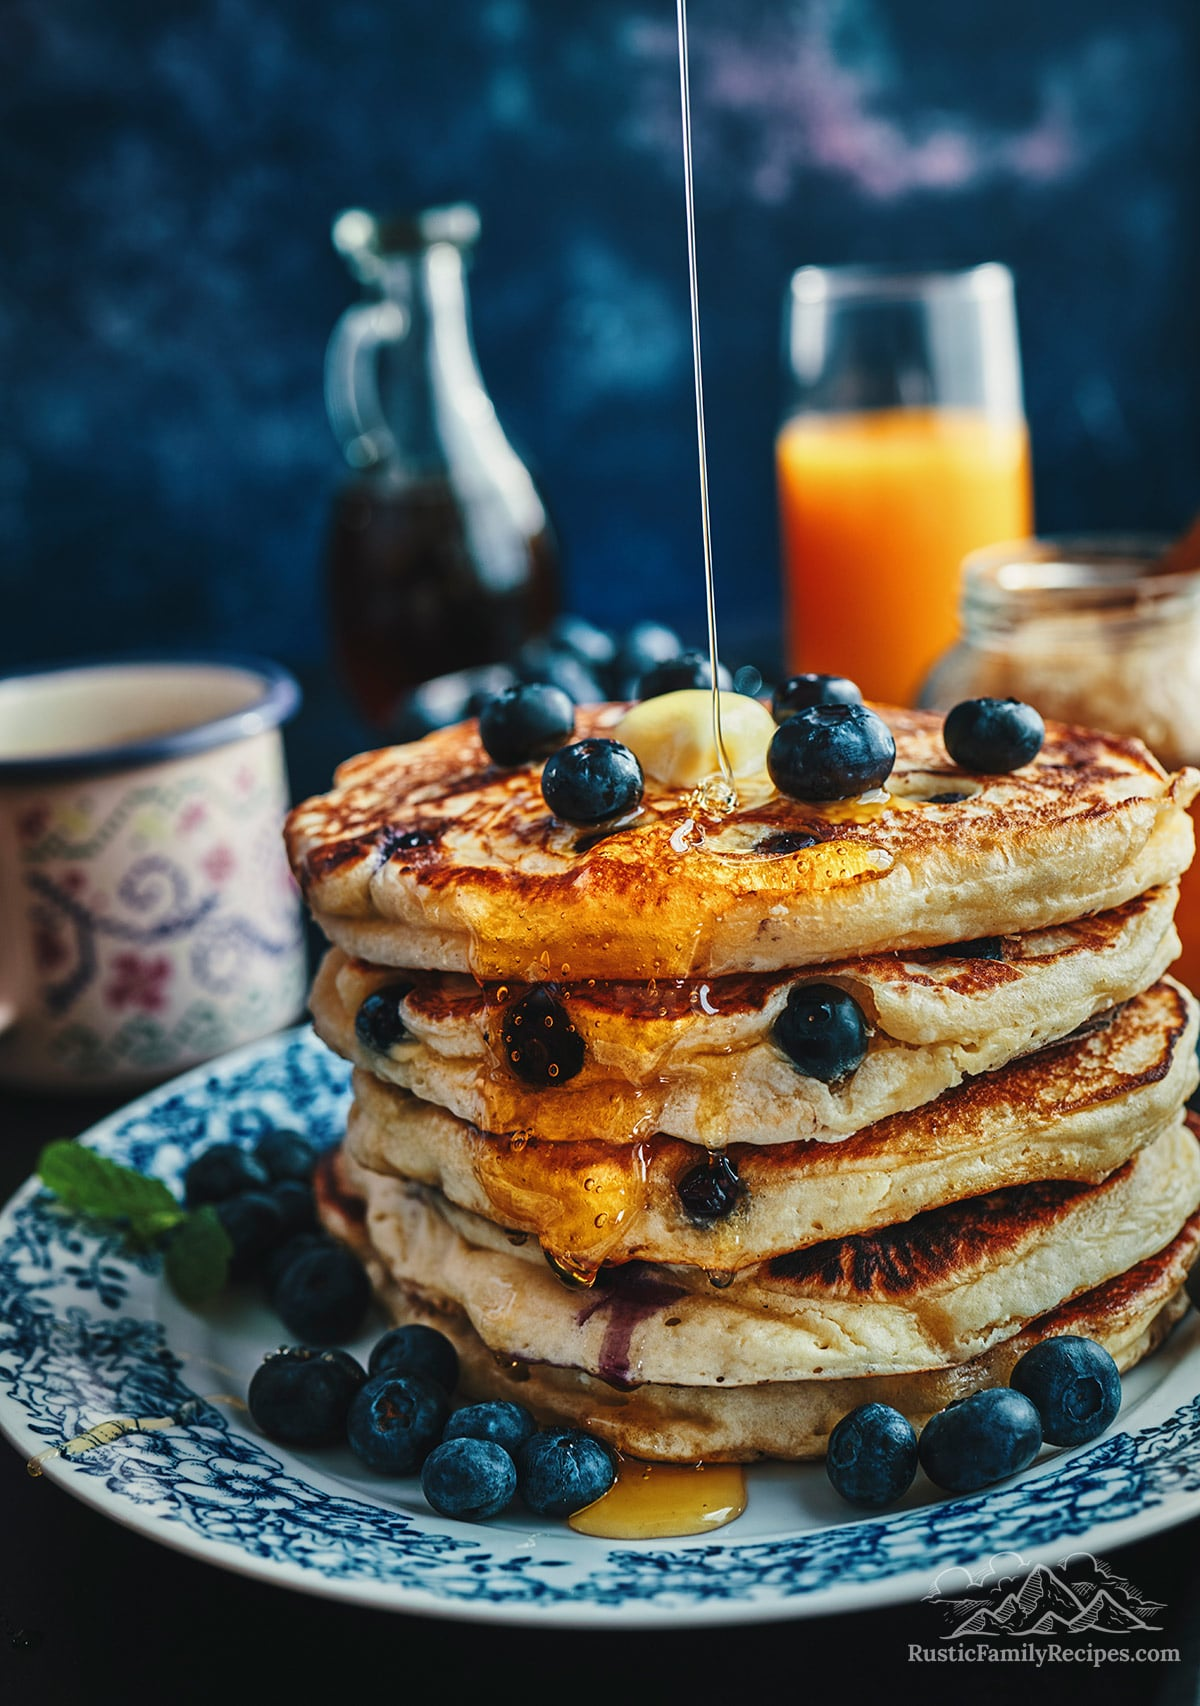 A stack of fluffy blueberry buttermilk pancakes with melted butter, blueberries and syrup.